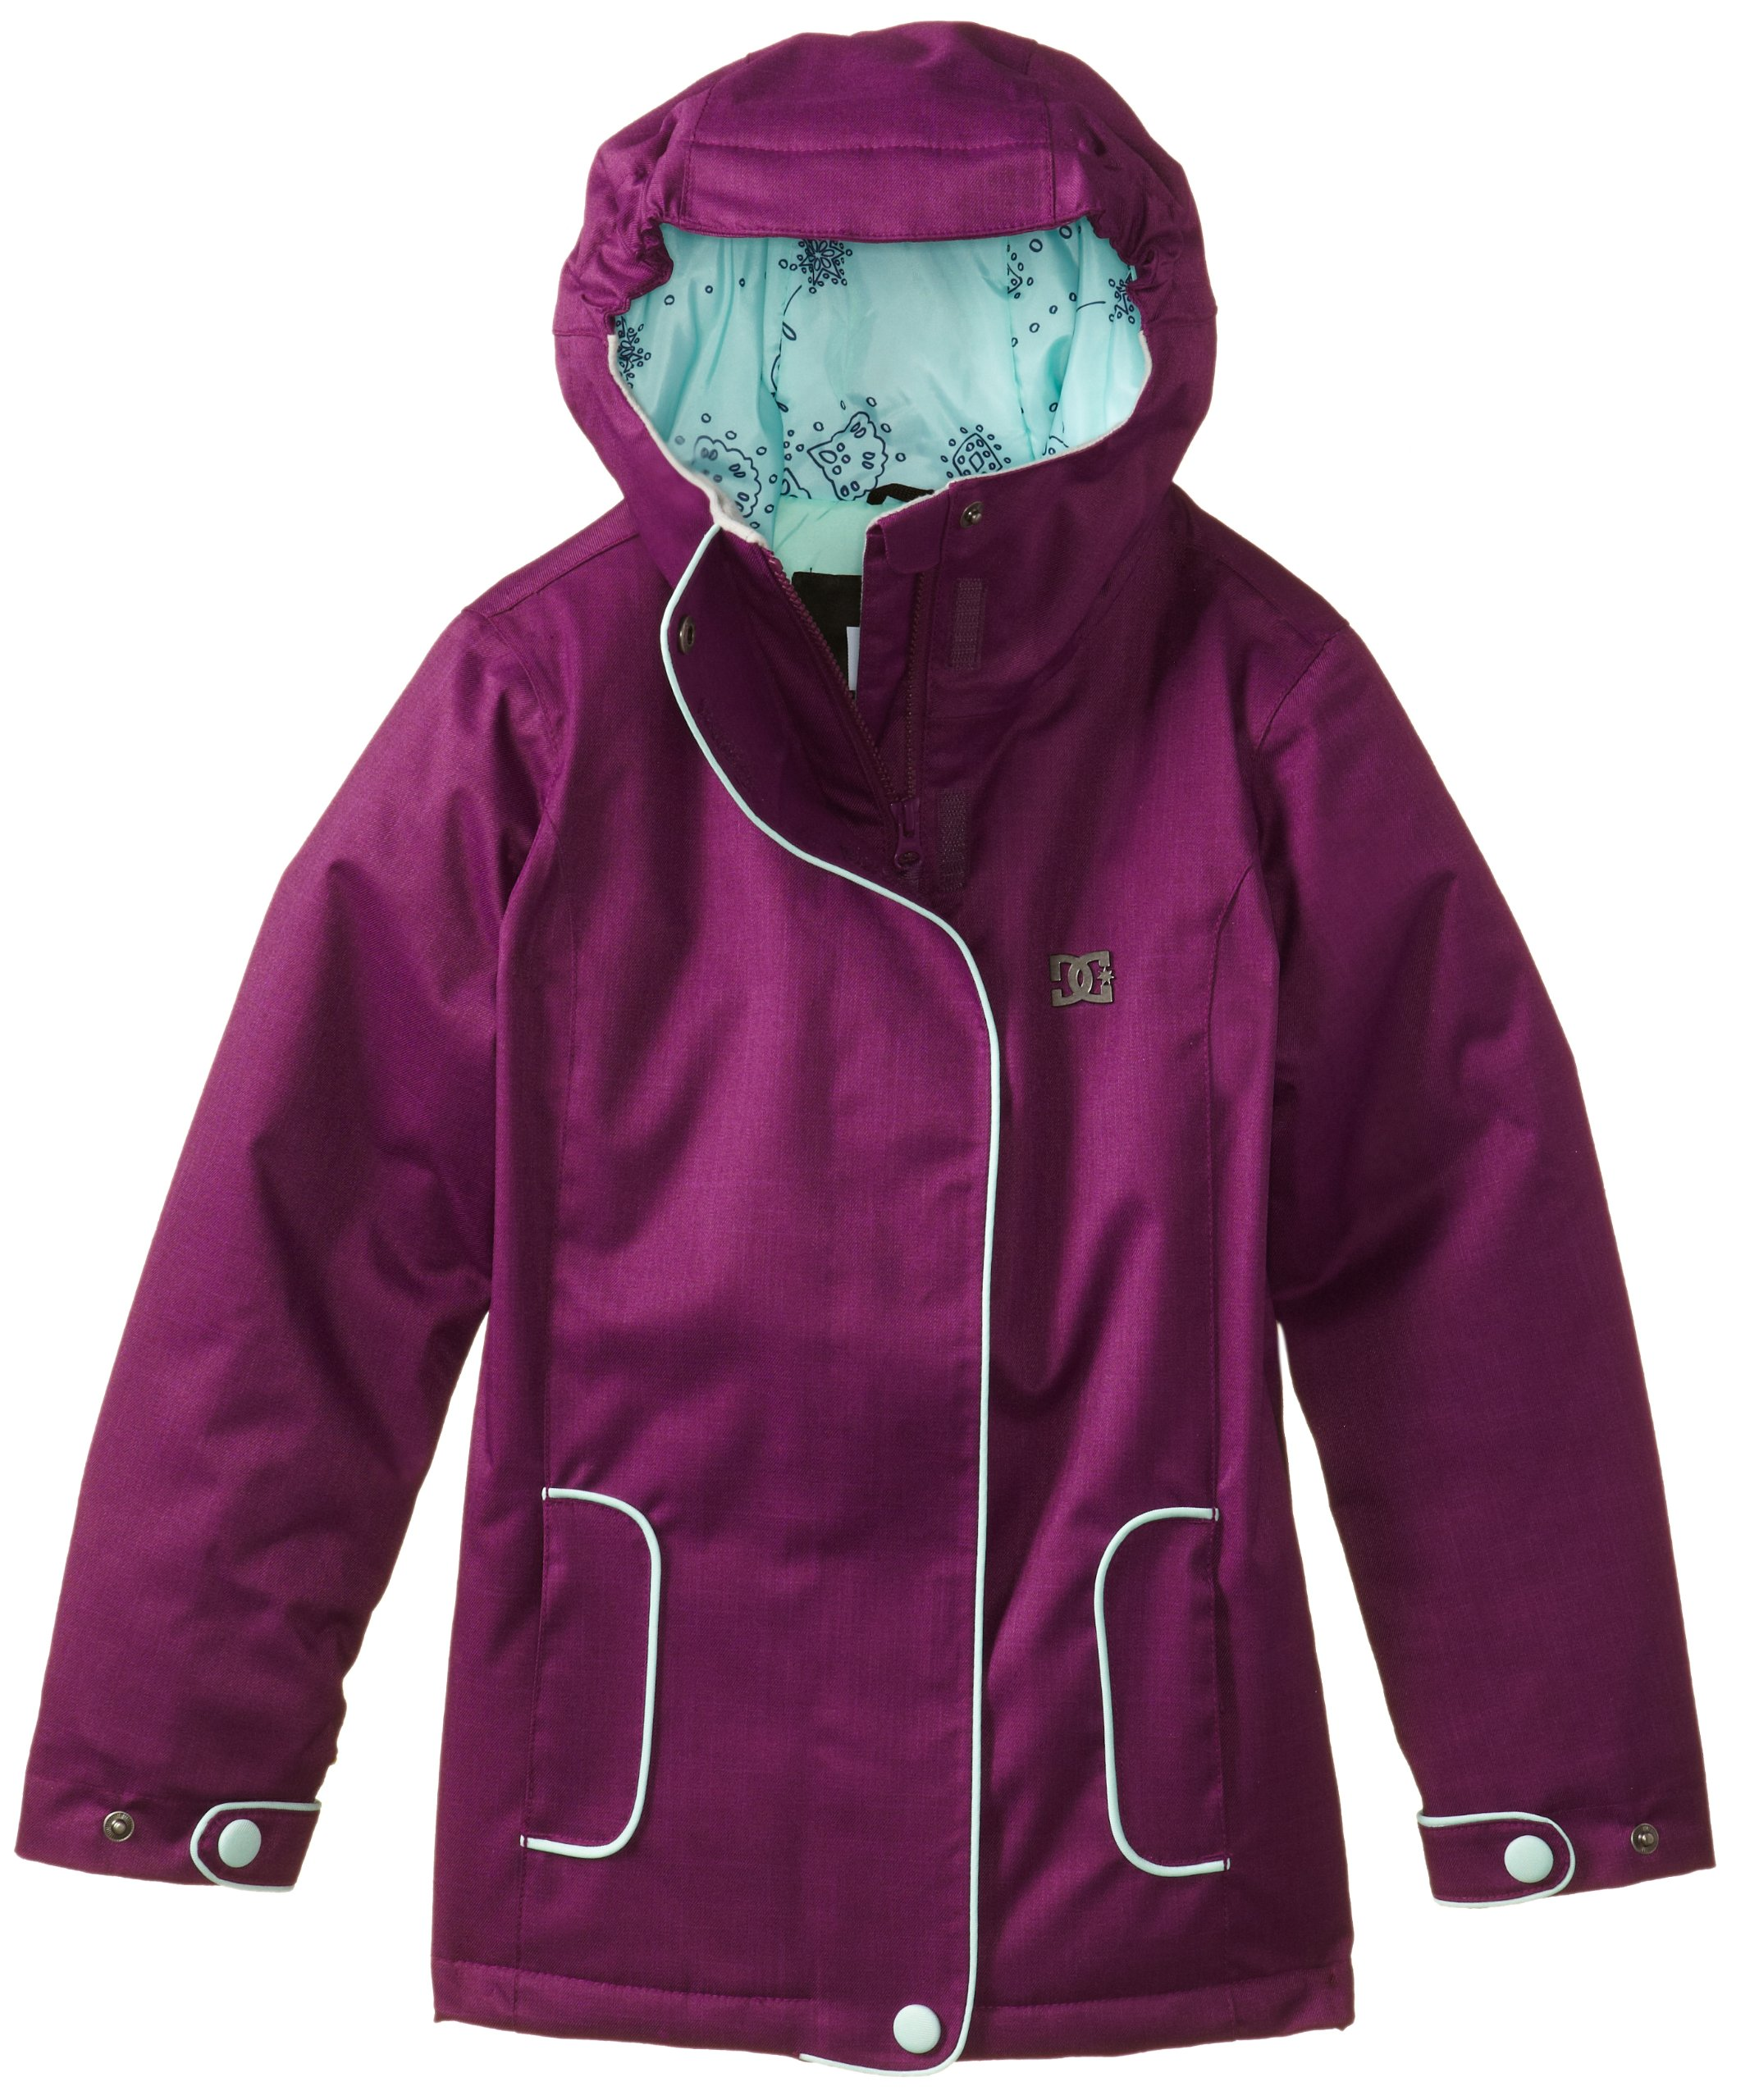 Best Rated in Girls' Snowboarding Jackets & Helpful